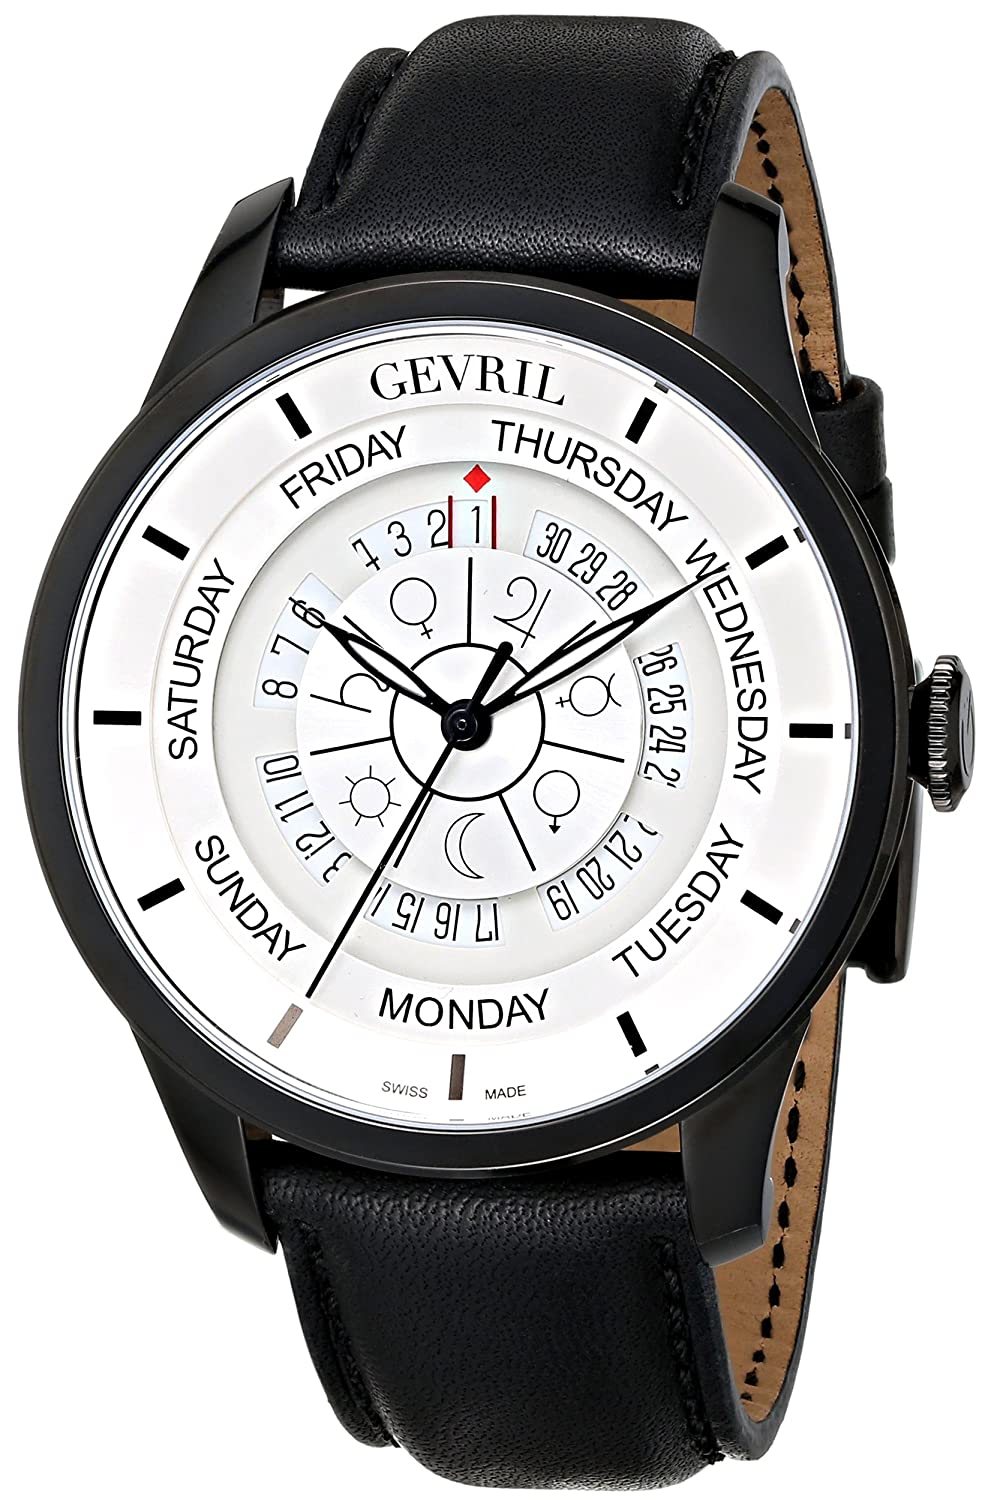 Gevril Columbus Circle Mens Swiss Automatic Black Leather Strap Watch, Model 2005